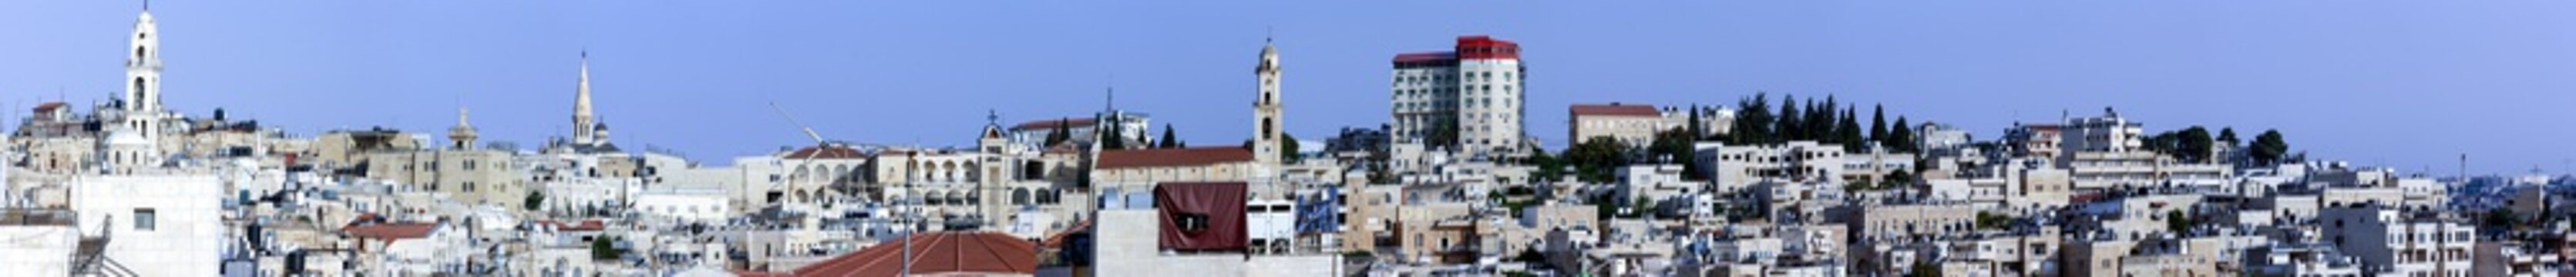 General scape of the city of Bethlehem, at the West Bank, Palestine